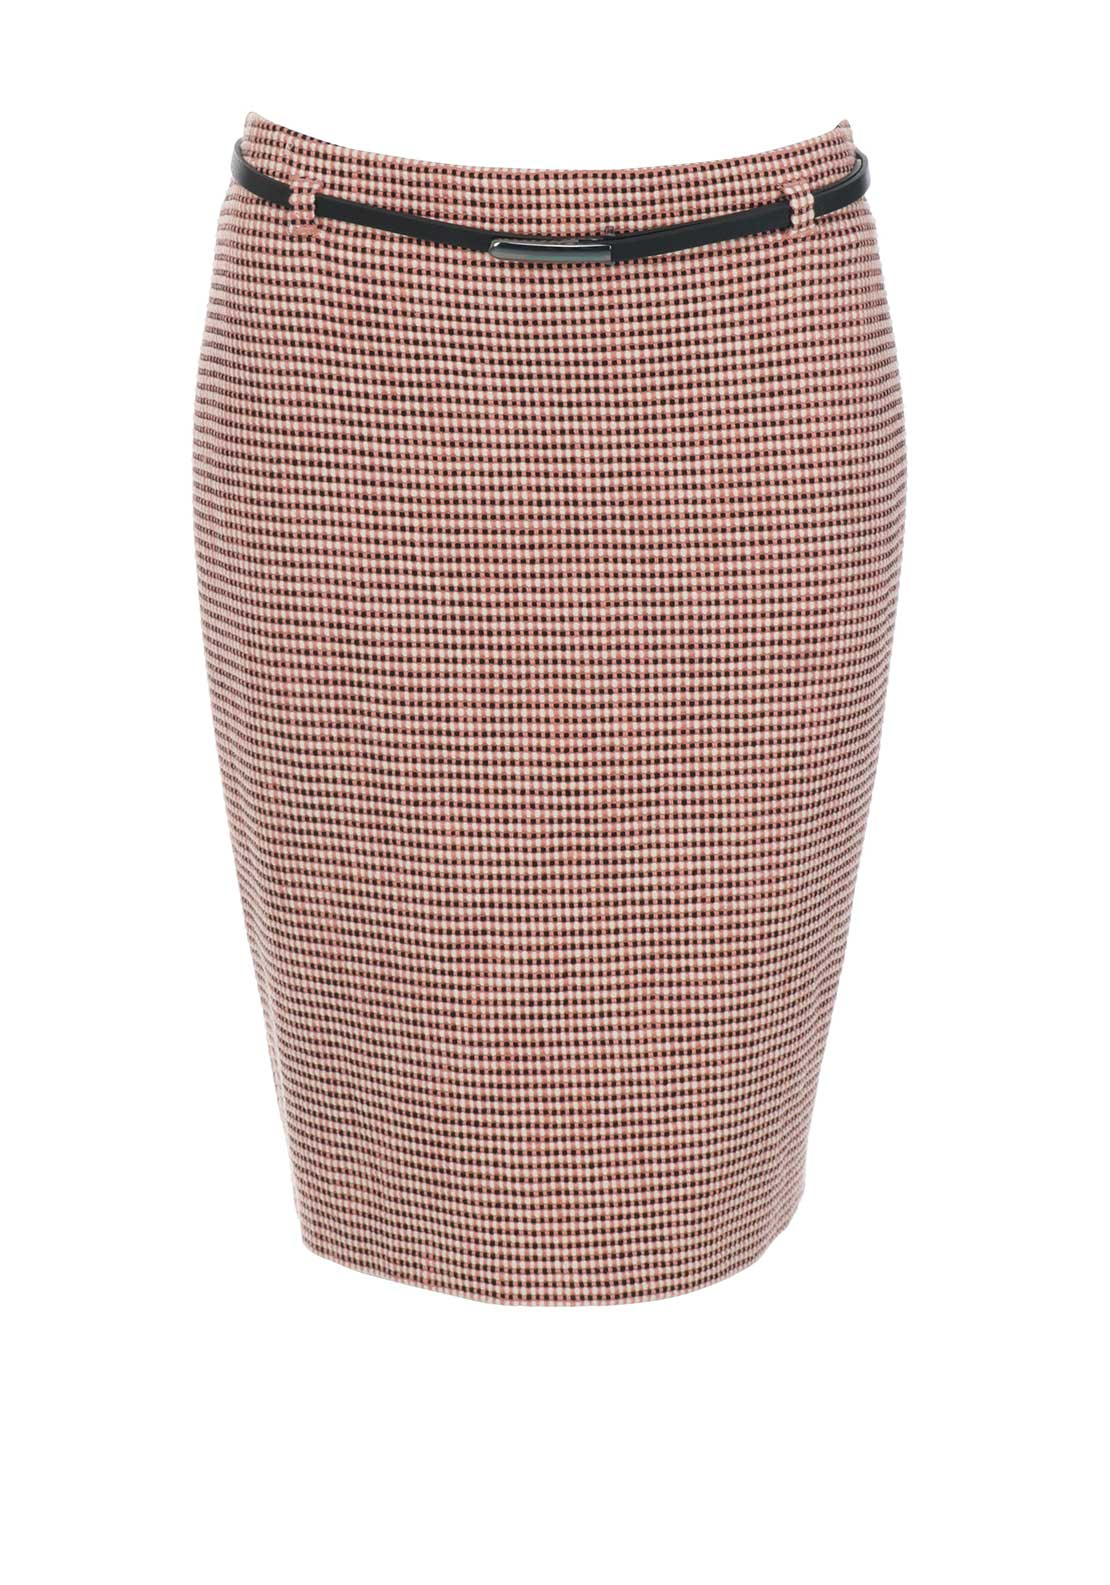 Gerry Weber Woven Print Pencil Skirt, Peach